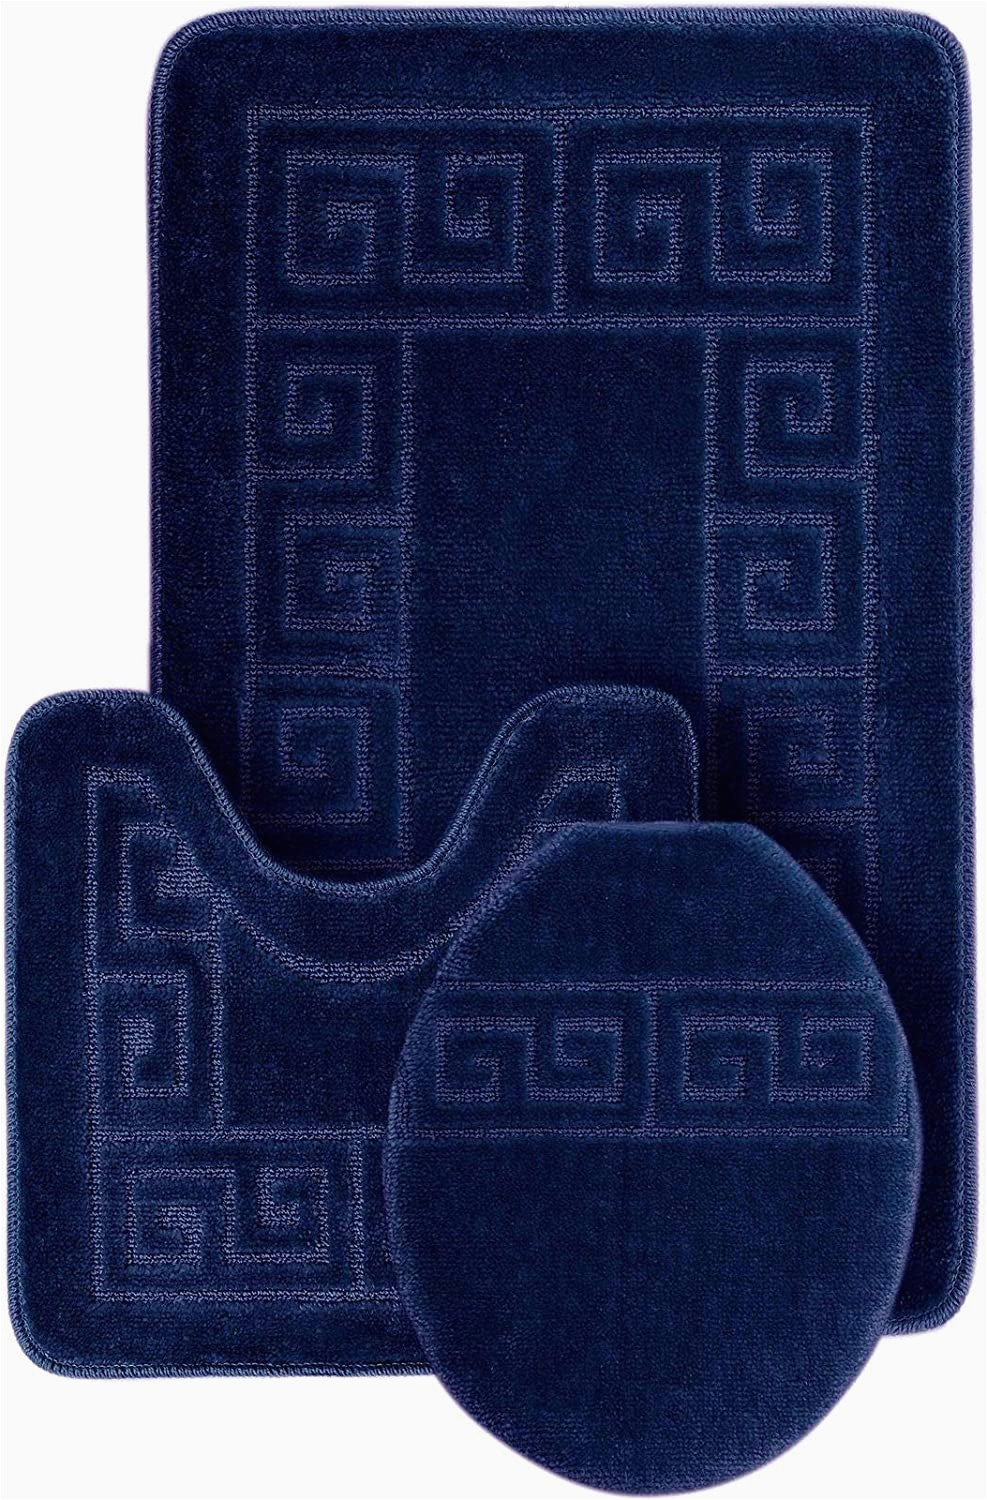 """Contemporary Bath Rug Sets Wpm World Products Mart Bathroom Rugs Set 3 Piece Bath Pattern Rug 20""""x32"""" Contour Mats 20""""x20"""" with Lid Cover Navy"""